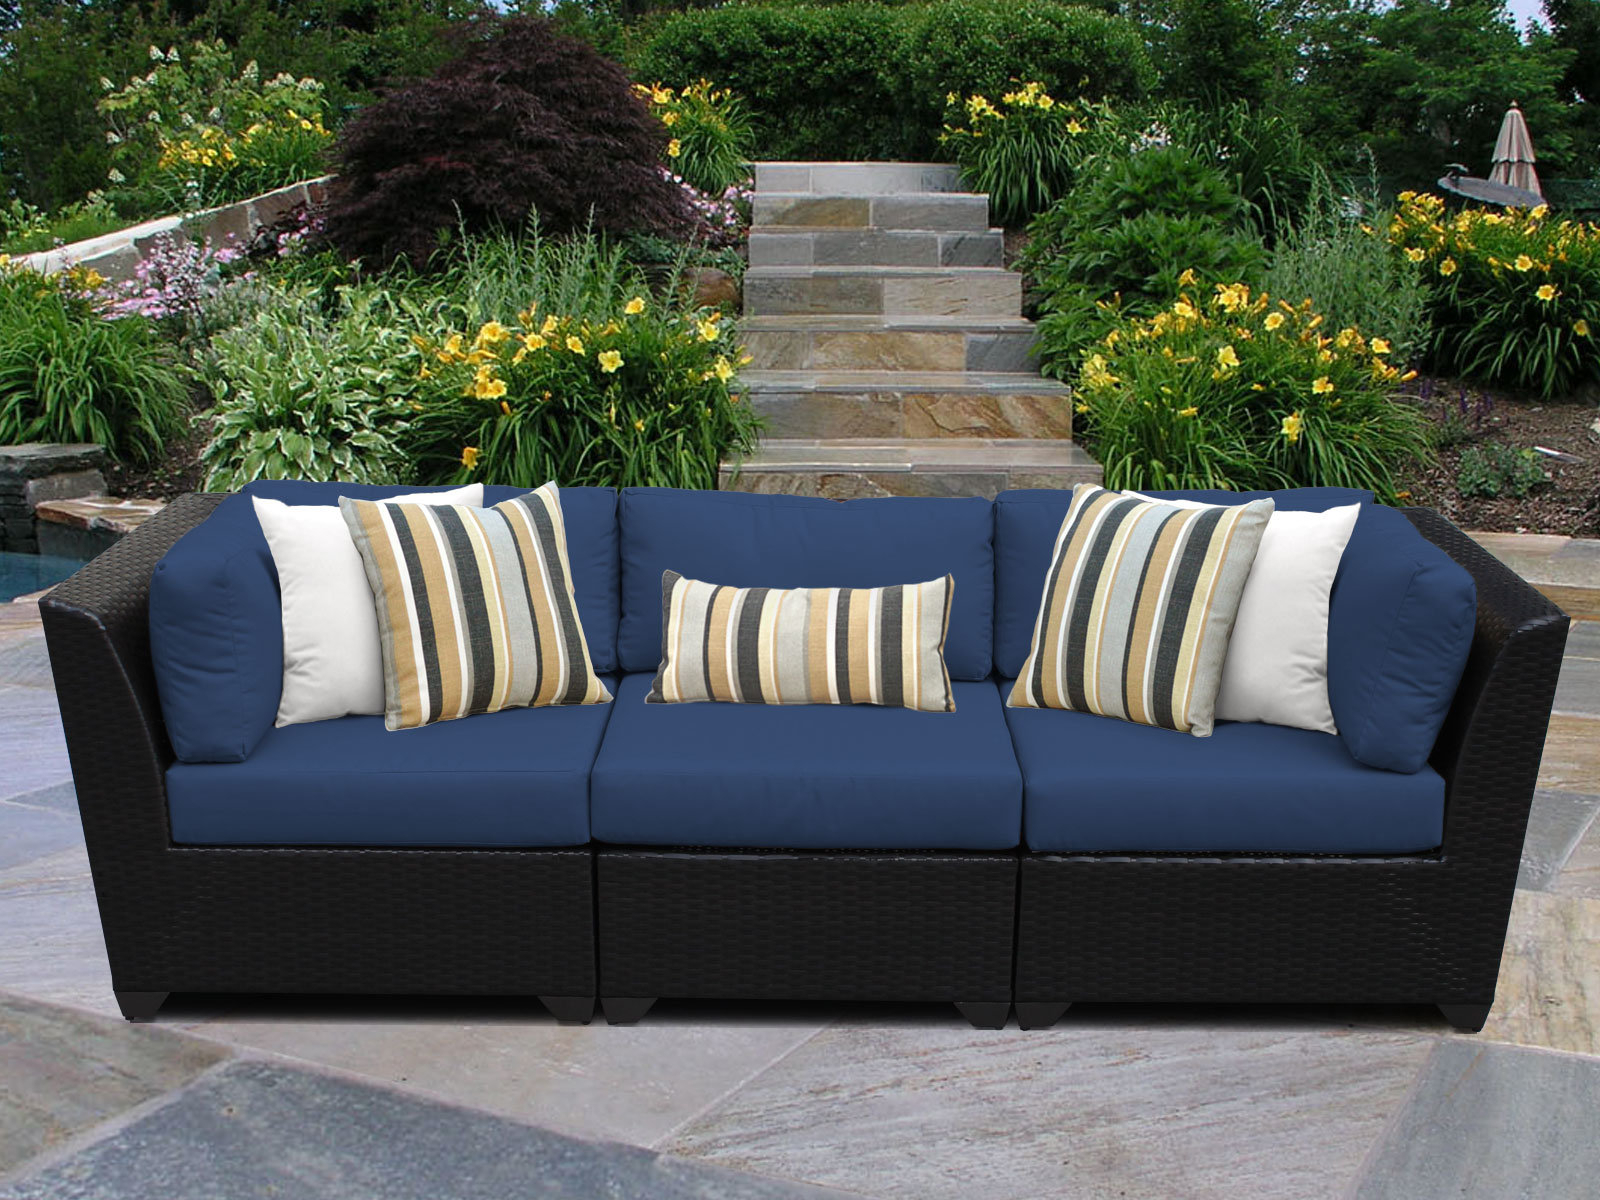 Most Current Camak Patio Sofas With Cushions In Camak Patio Sofa With Cushions (View 13 of 20)